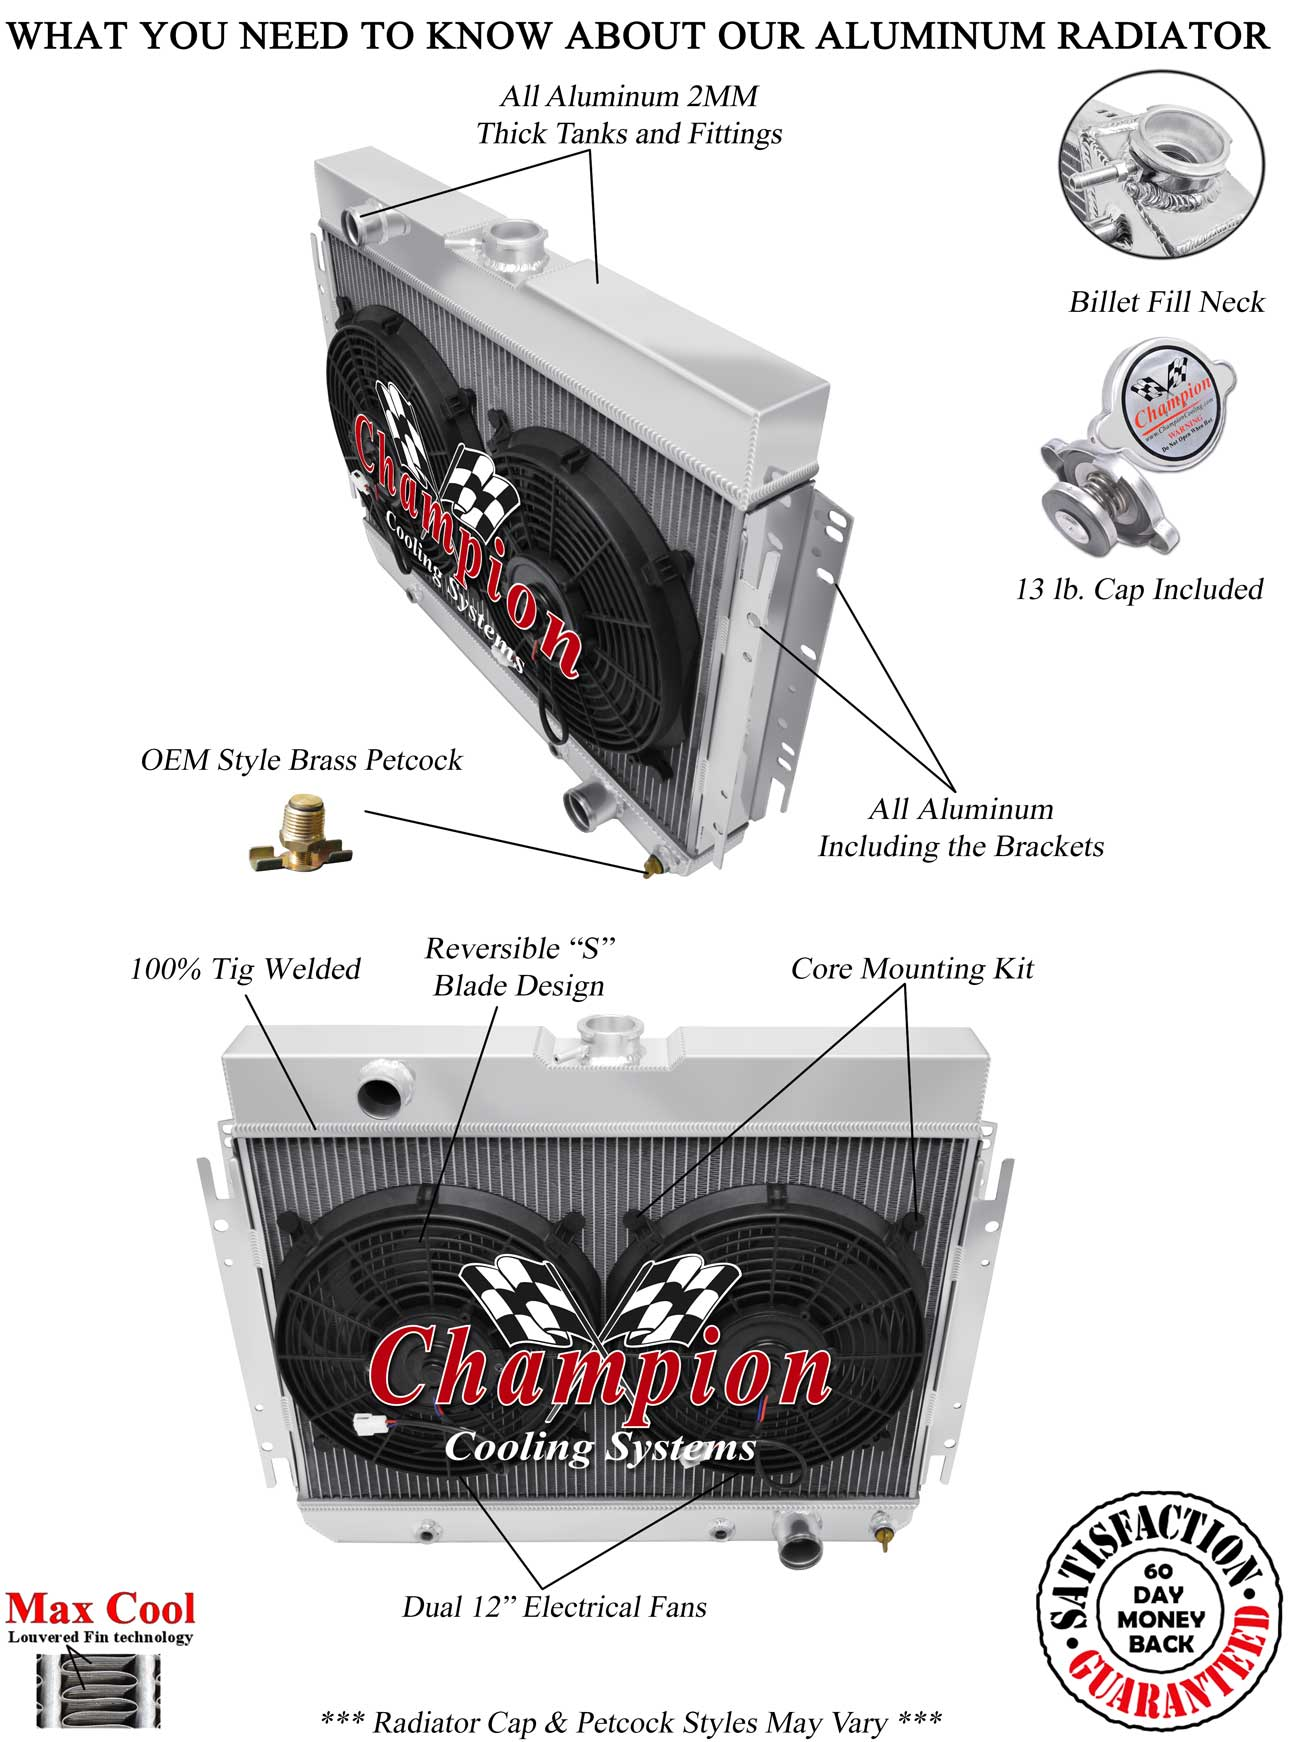 https://www.championcooling.com/photos/Photos%20White/With%20Fans/Combos/289/289Fans_white_Diagram_Champion.jpg